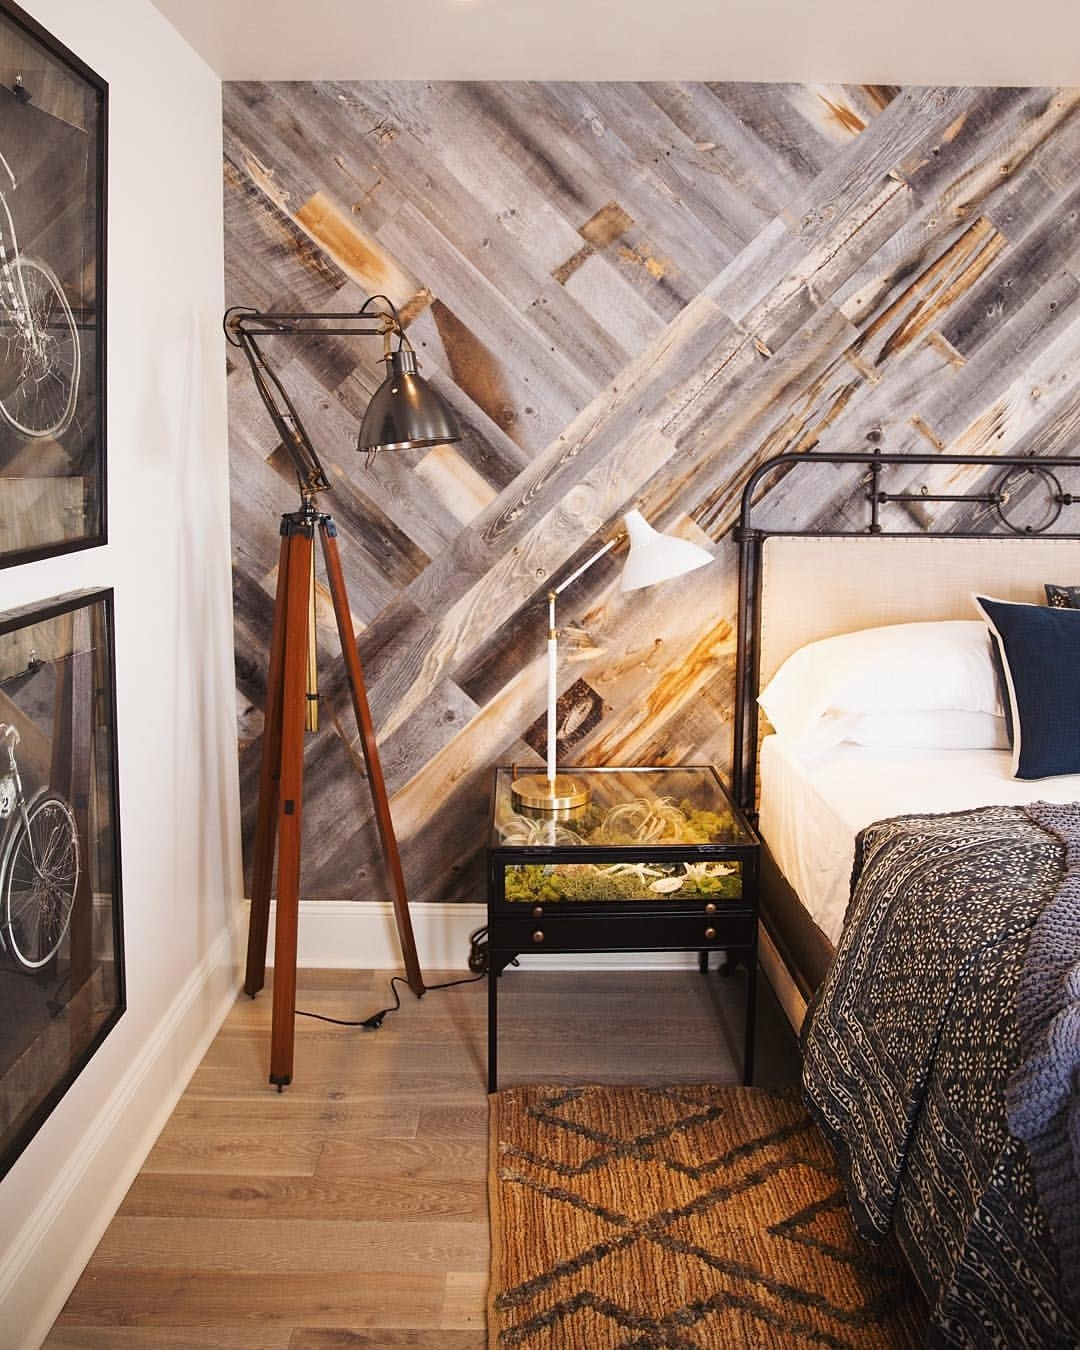 Diy Easy Peel And Stick Wood Wall Decor Throughout Most Popular Wooden Wall Accents (View 5 of 15)